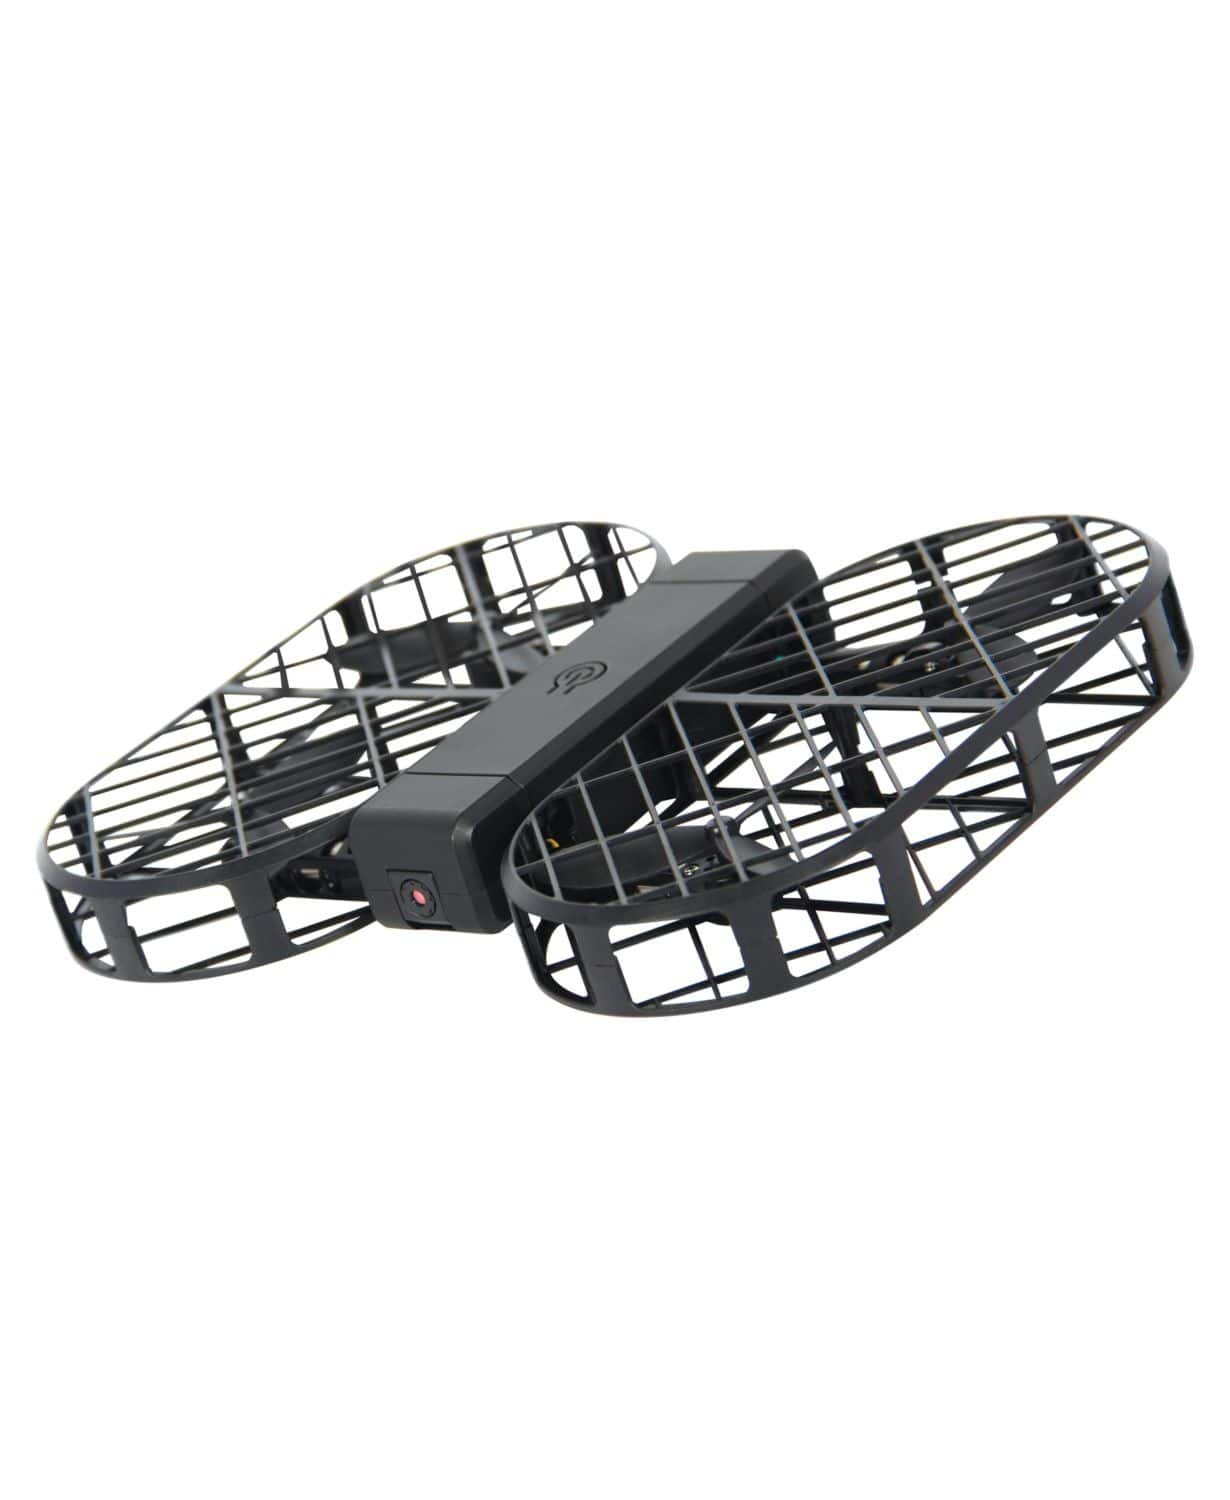 Protocol Pixie Foldable Drone with Live Streaming Camera $19.99